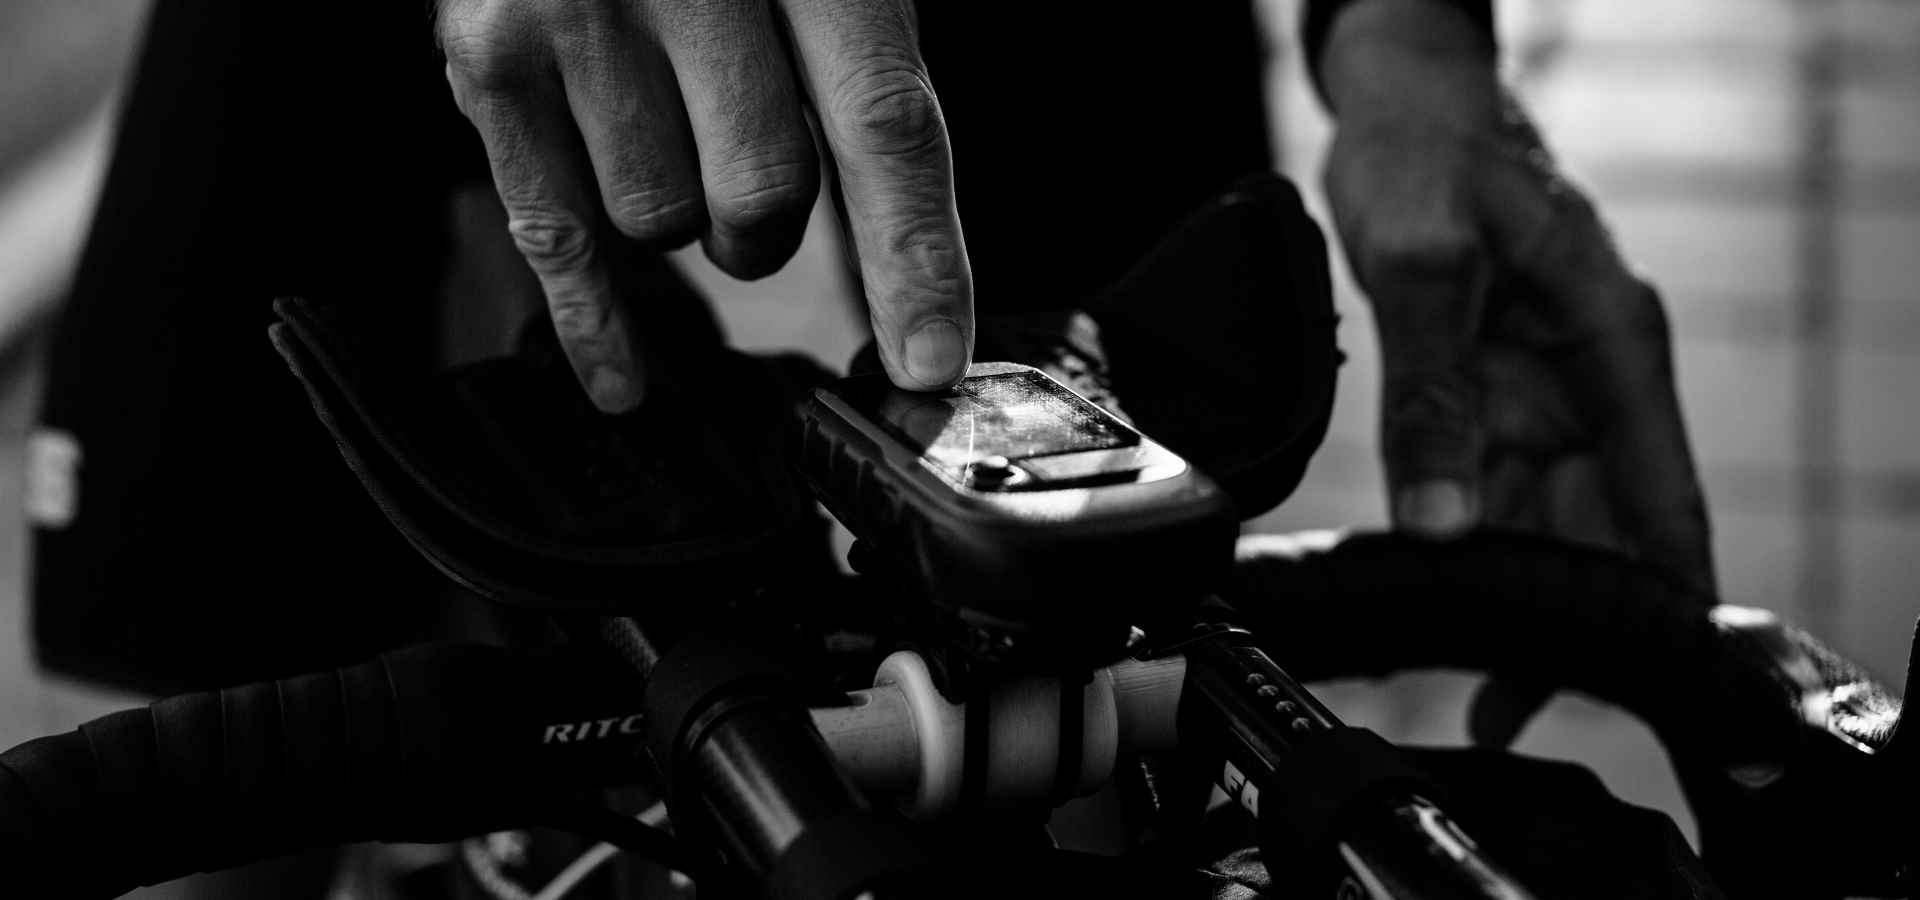 hand using garmin device for bikepacking route planning